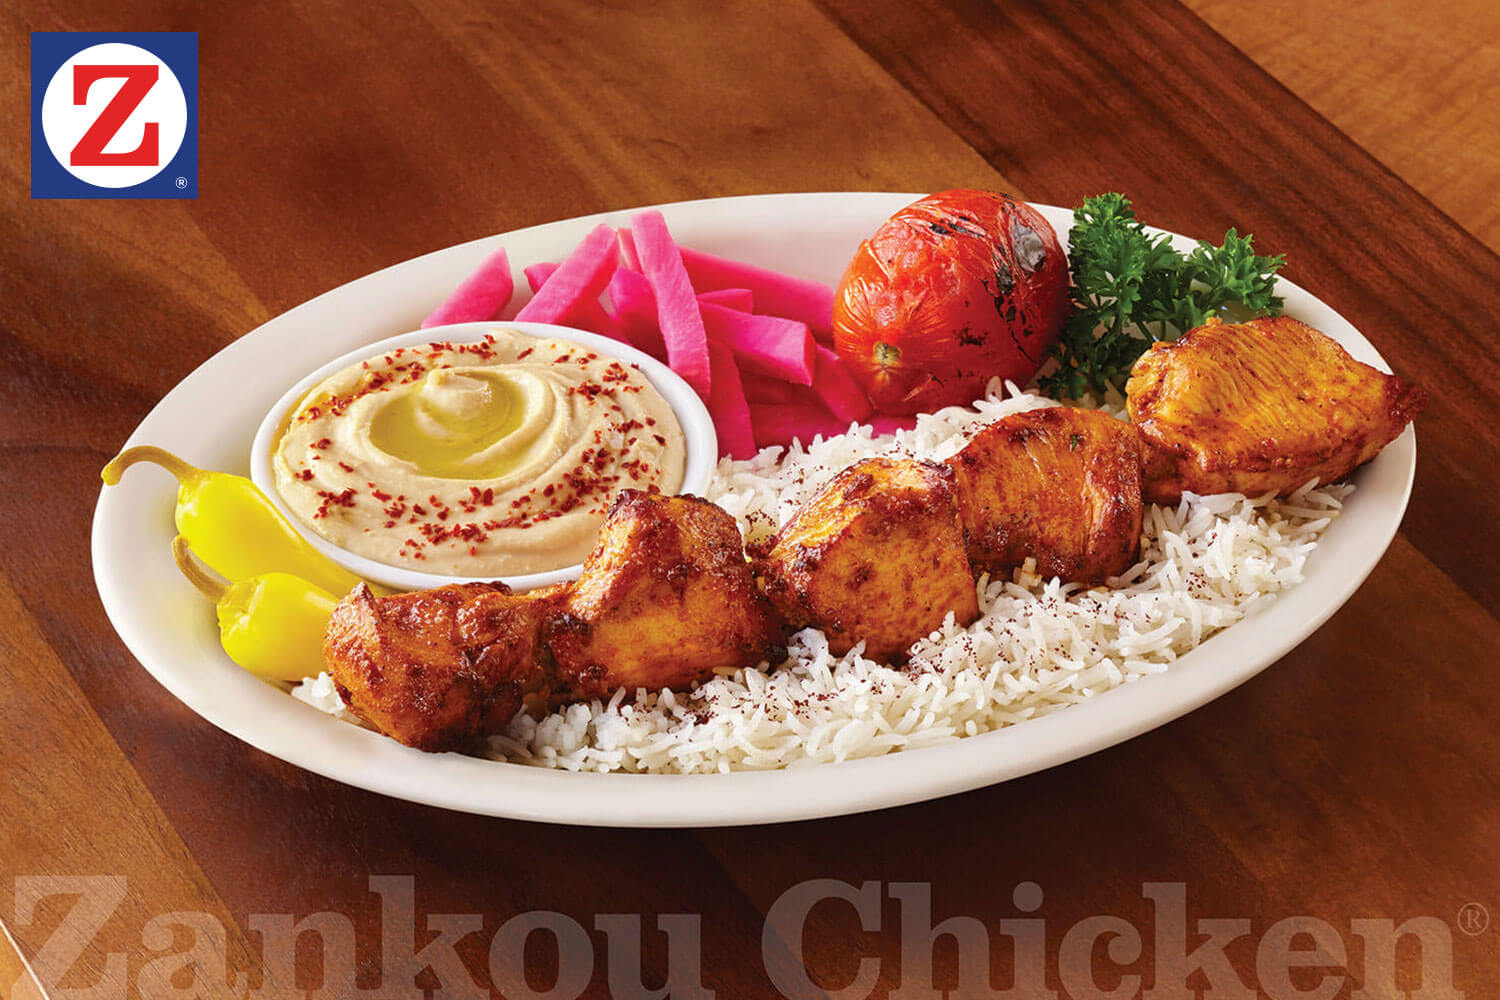 Single chicken kabob skewer plate with sides